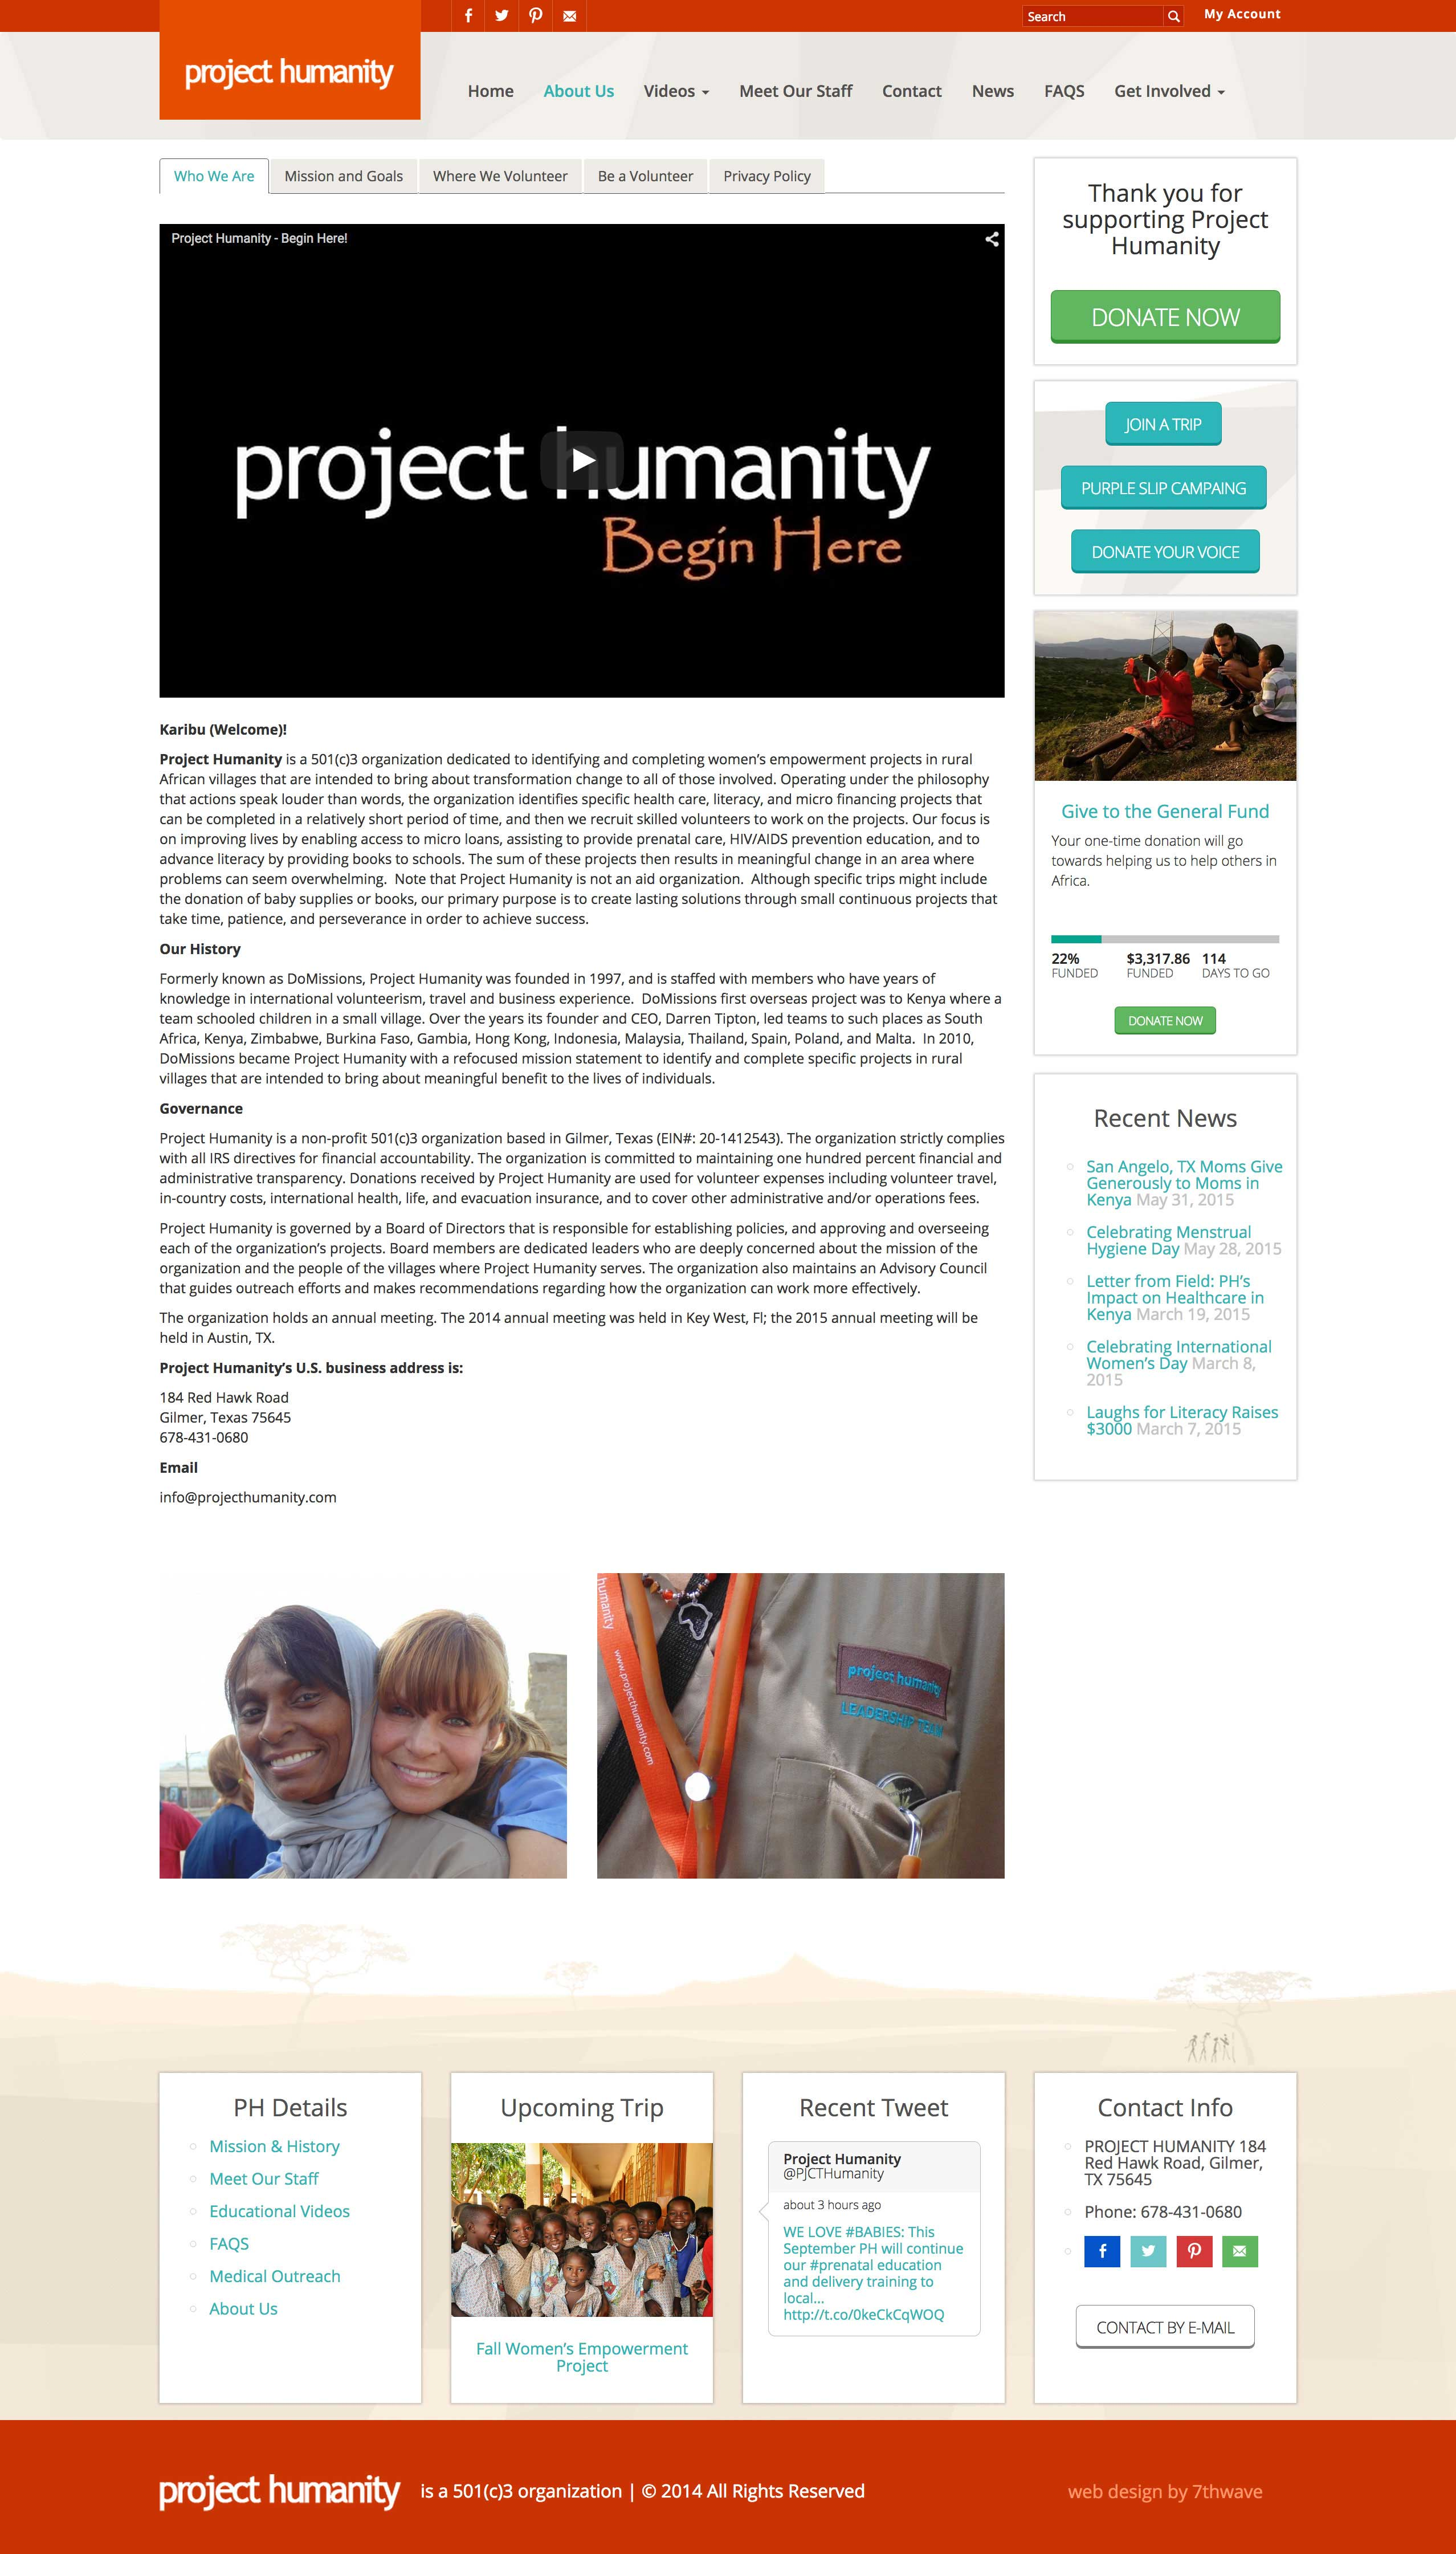 projecthumanity-web-design-about